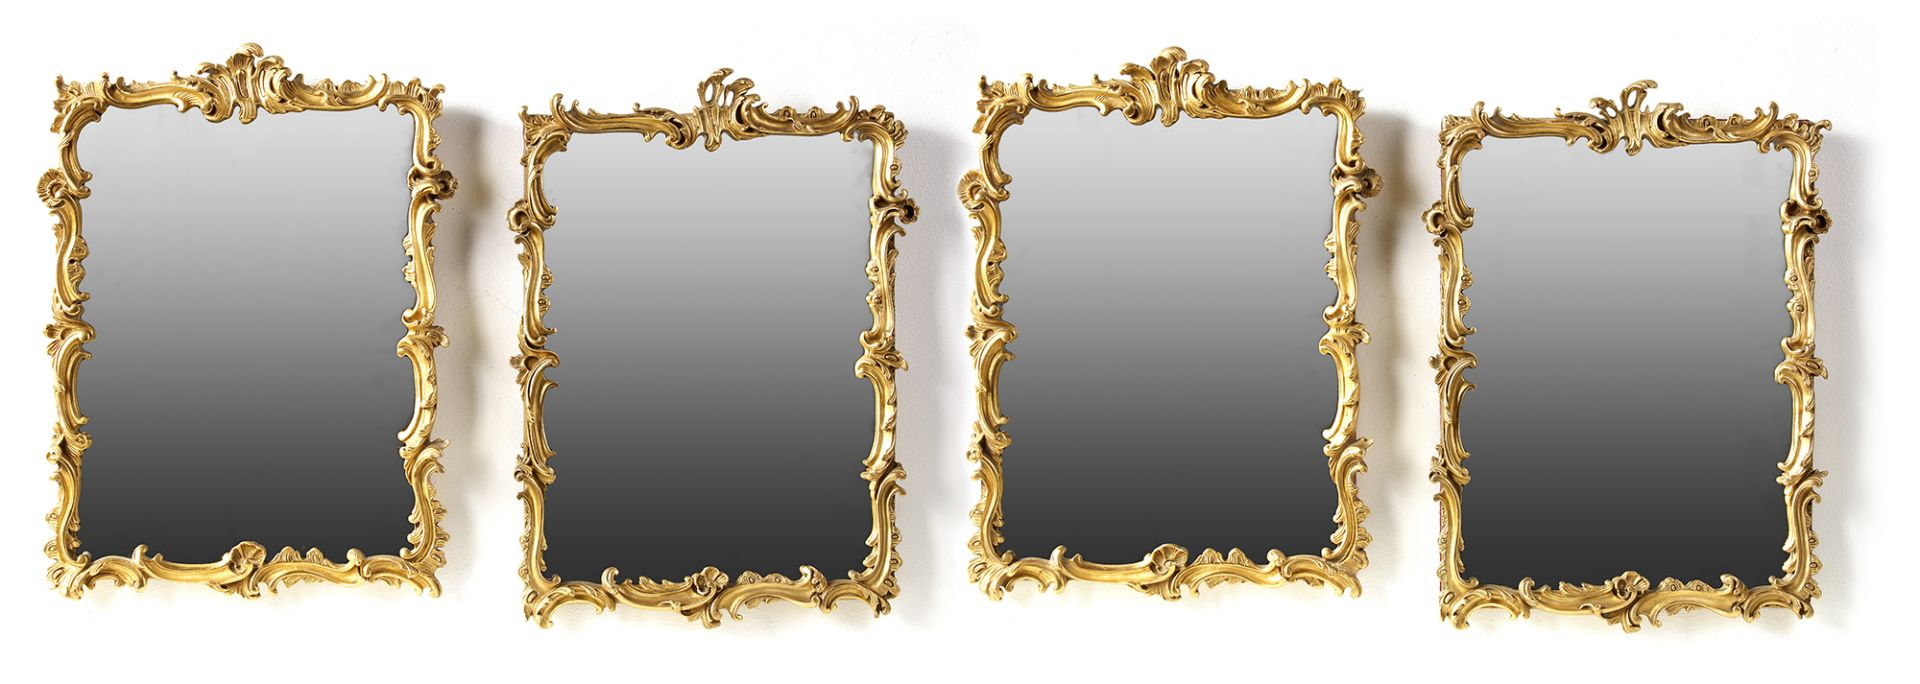 A SET OF FOUR GILT MIRRORS, FRANCE, 19TH CENTURY